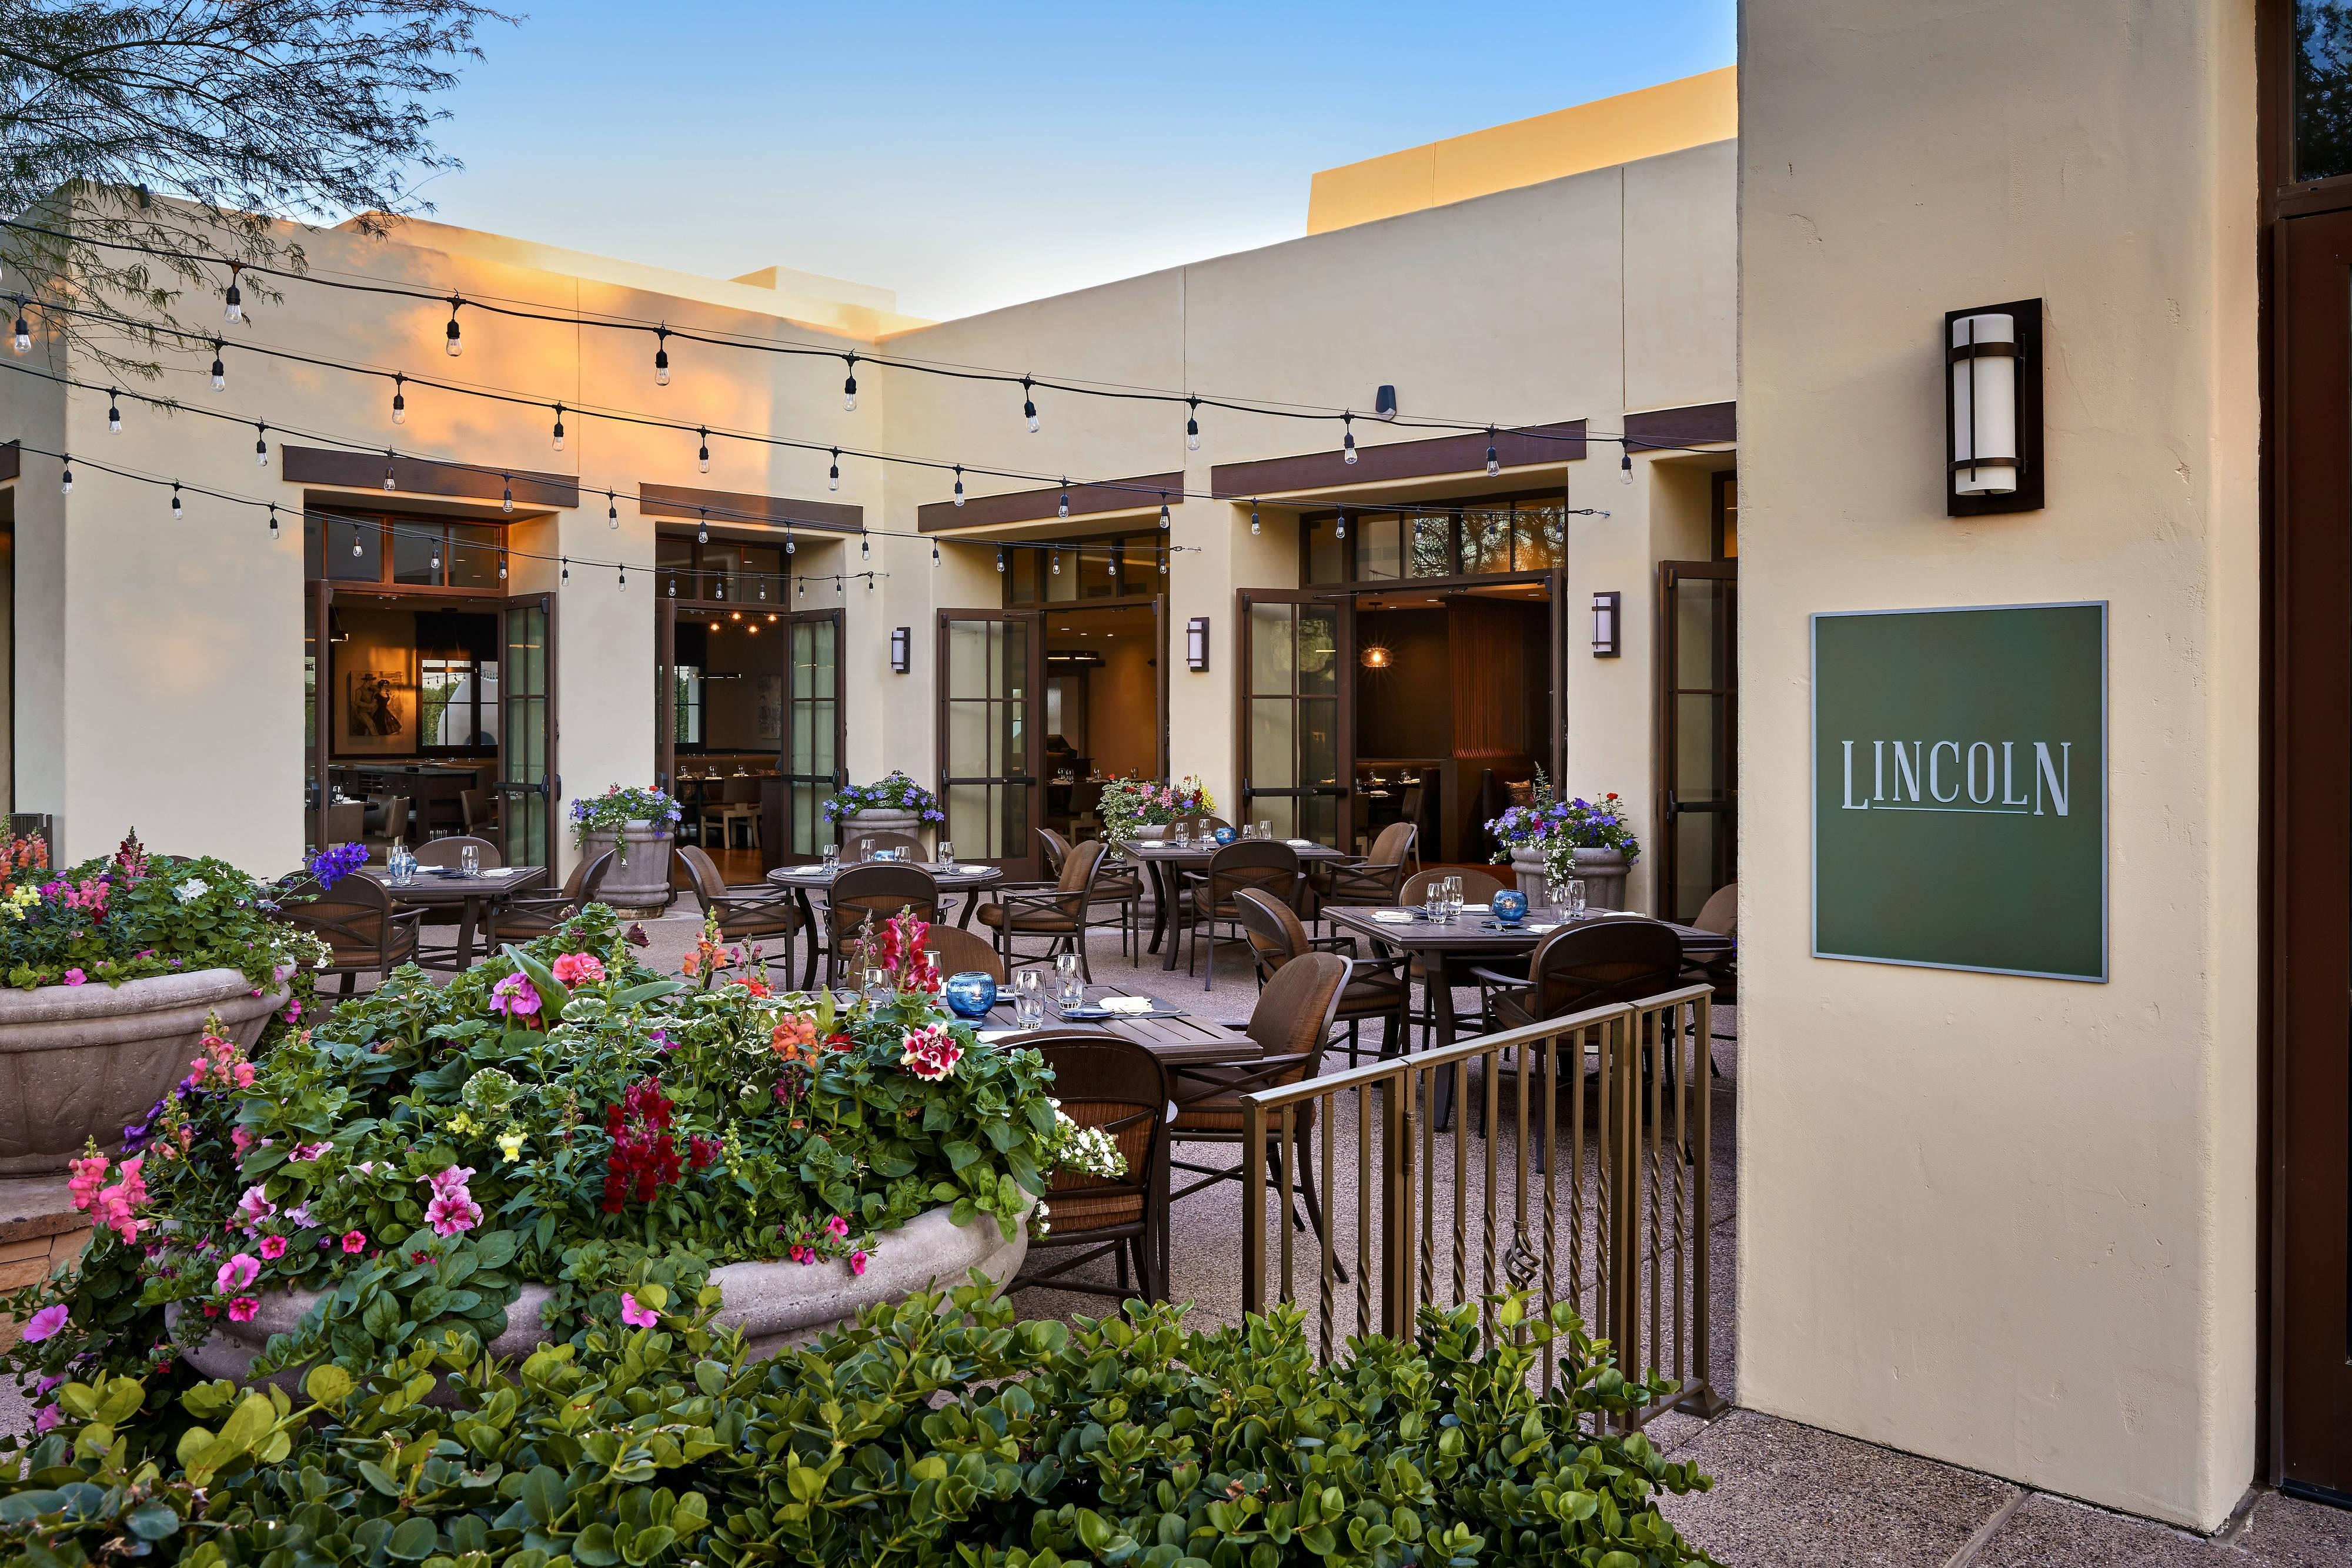 Lincoln Steakhouse & Bar